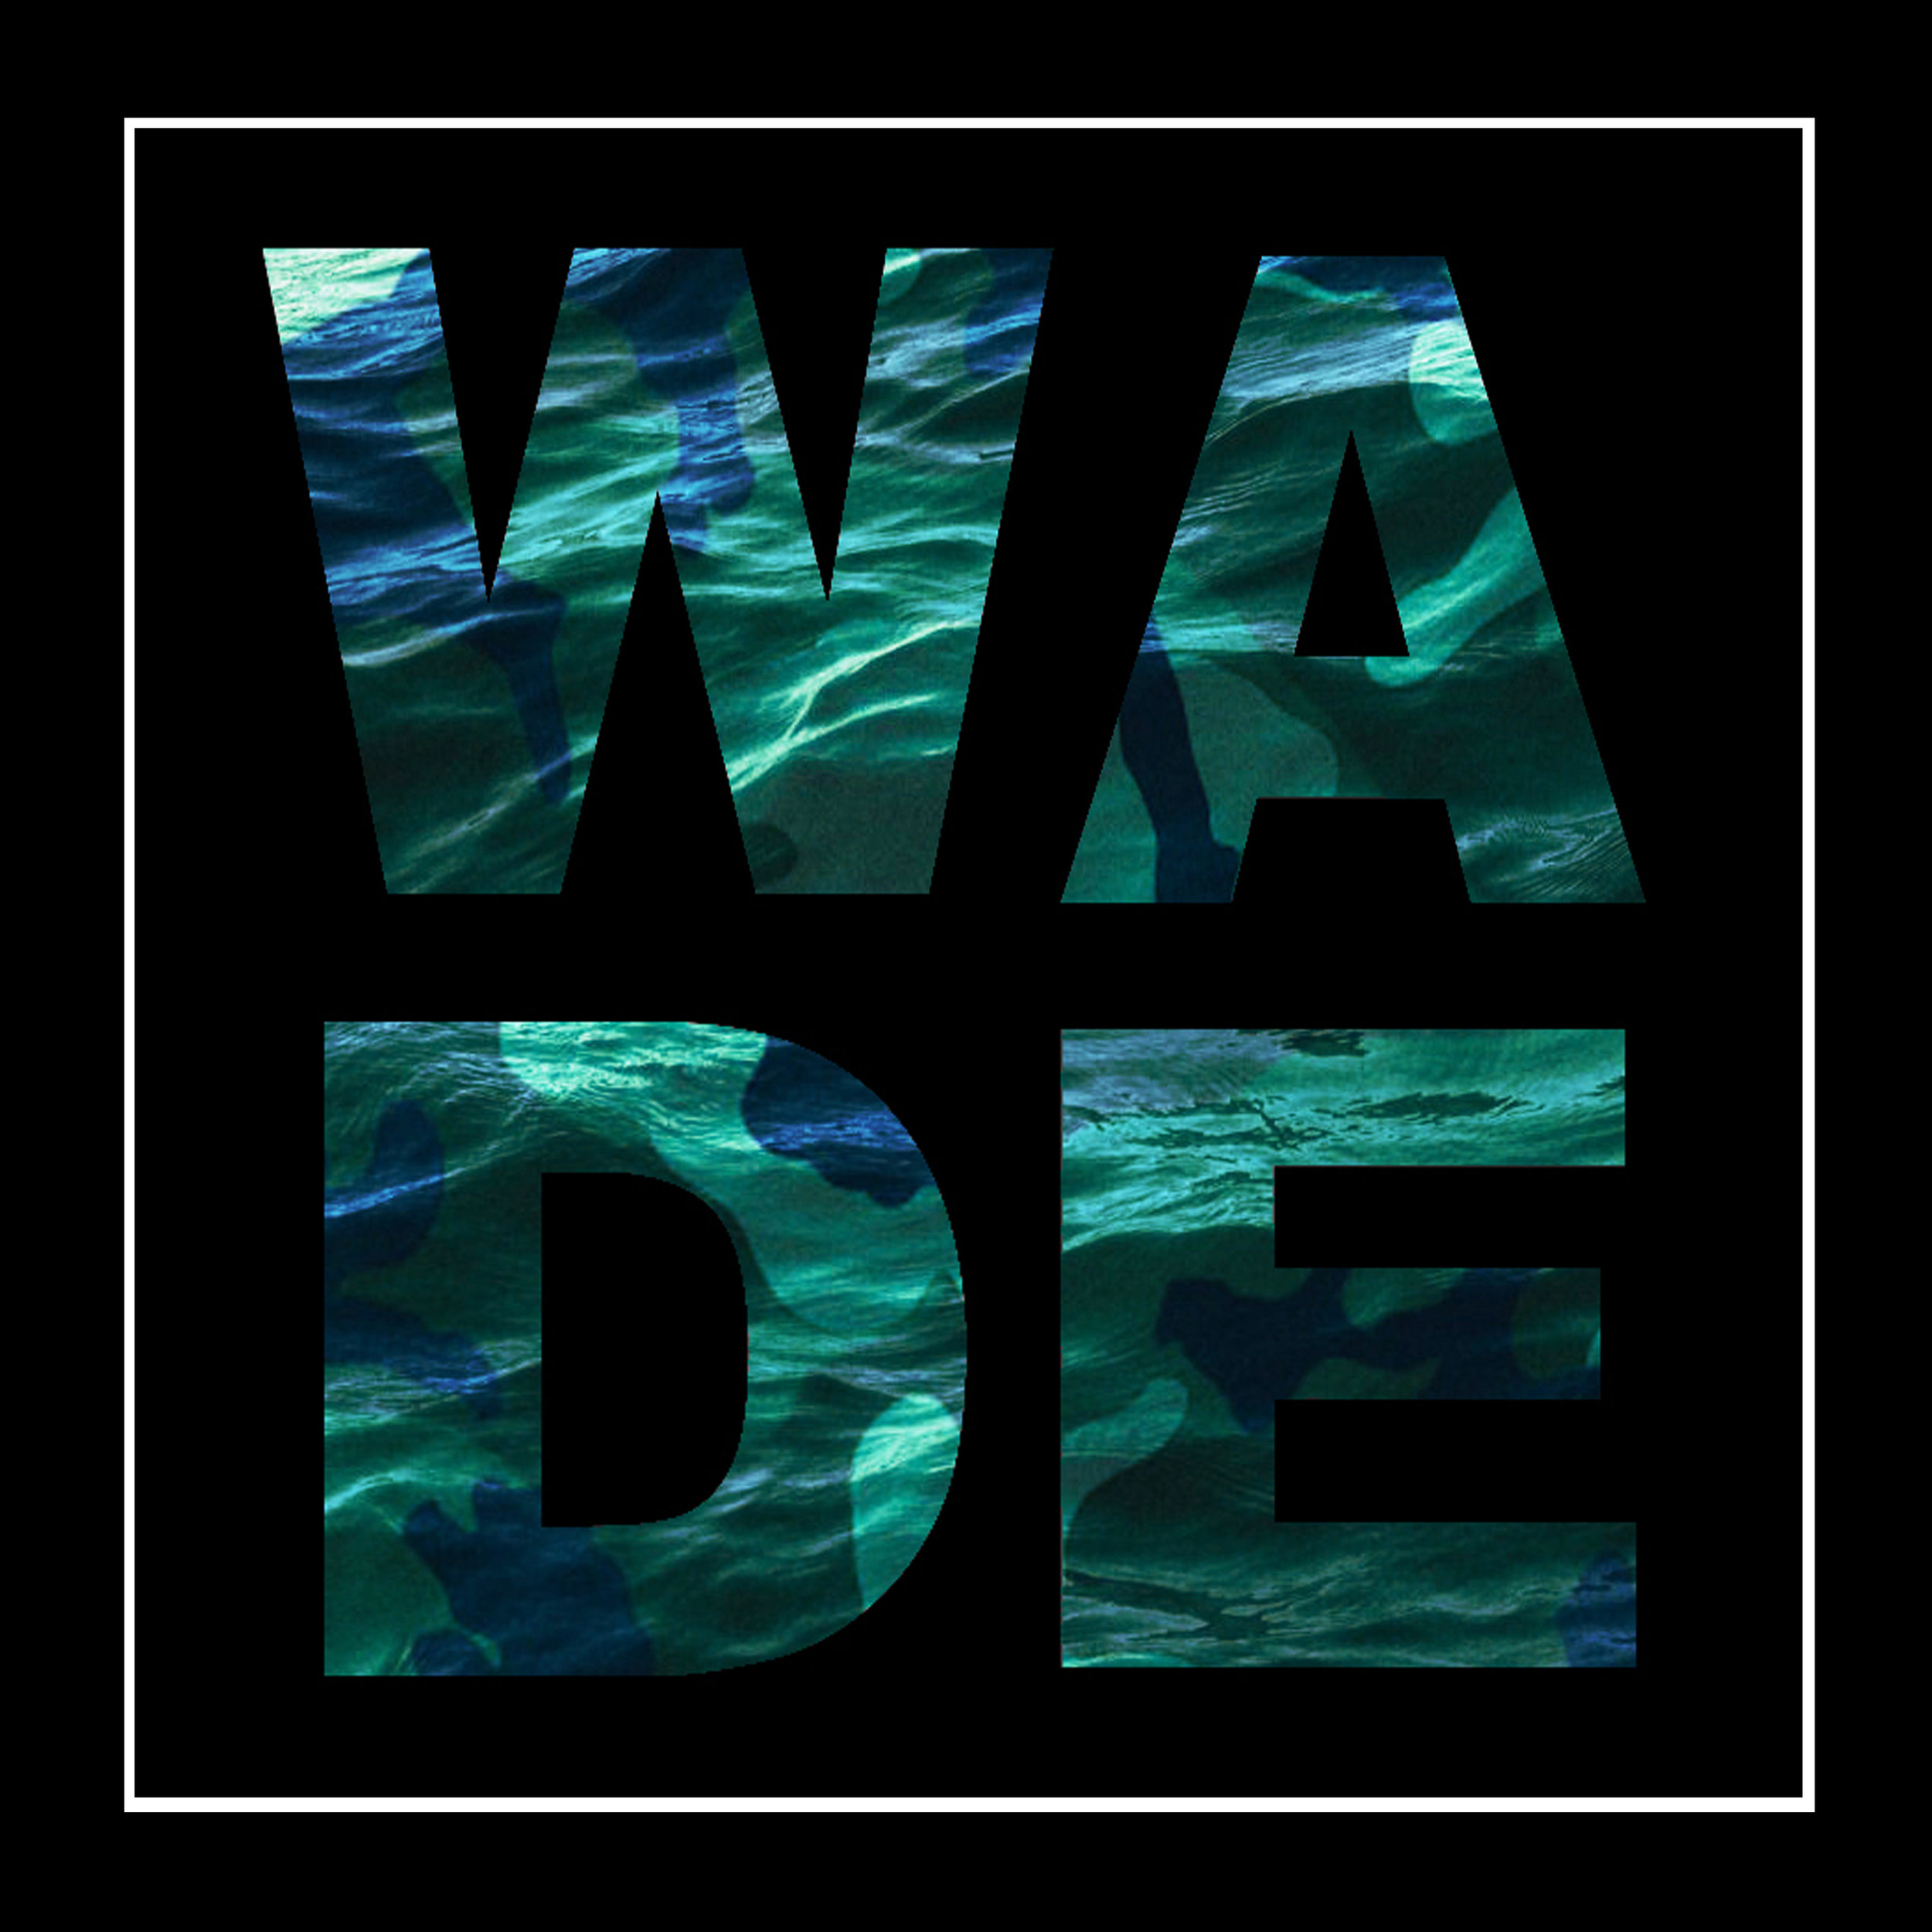 'WADE' - The single by Voice of Aiko is available to download now.